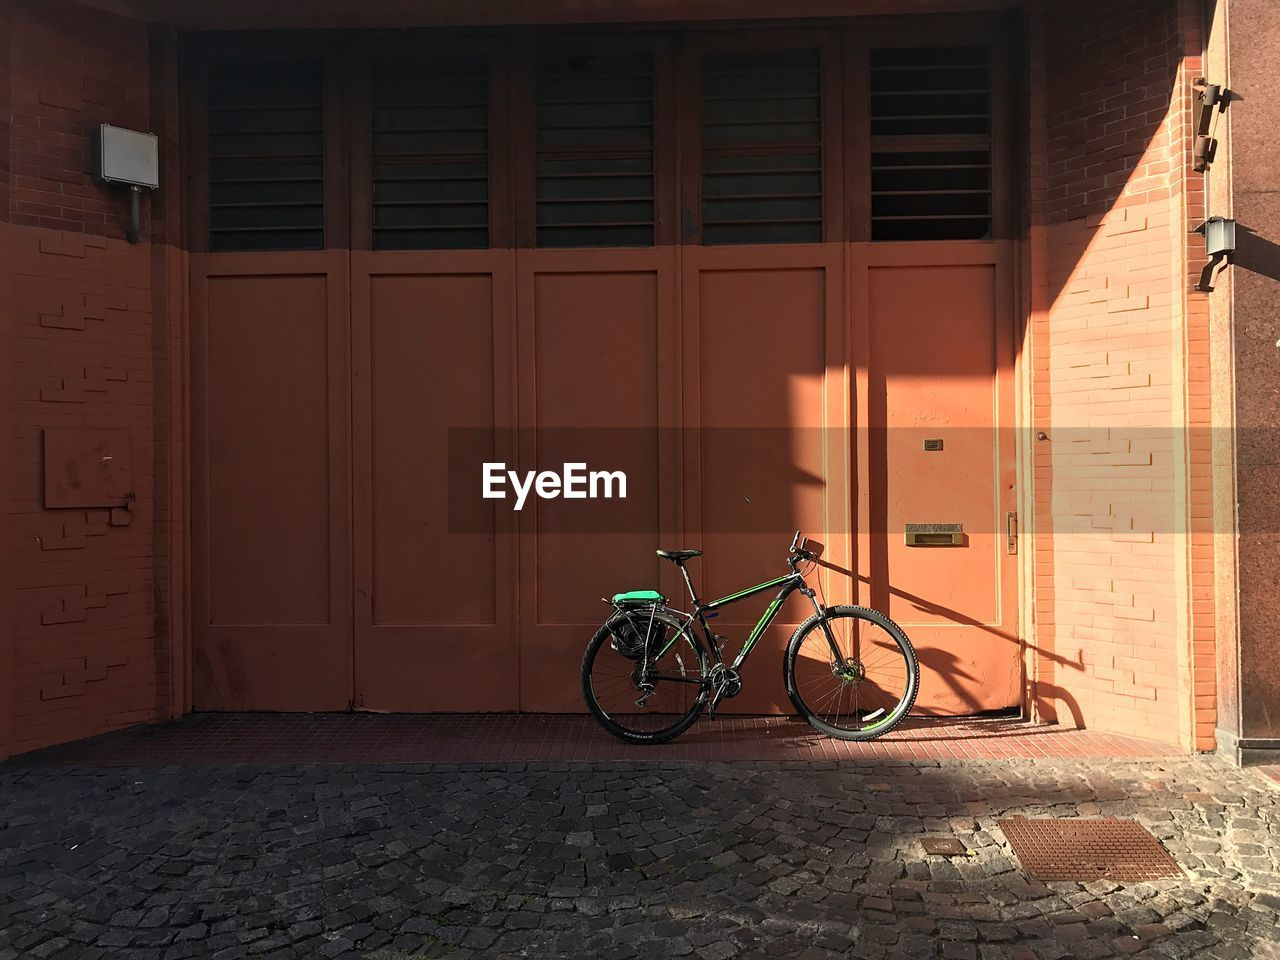 bicycle, built structure, architecture, transportation, land vehicle, mode of transportation, building exterior, stationary, wall - building feature, building, parking, day, city, no people, outdoors, sunlight, entrance, orange color, door, footpath, garage